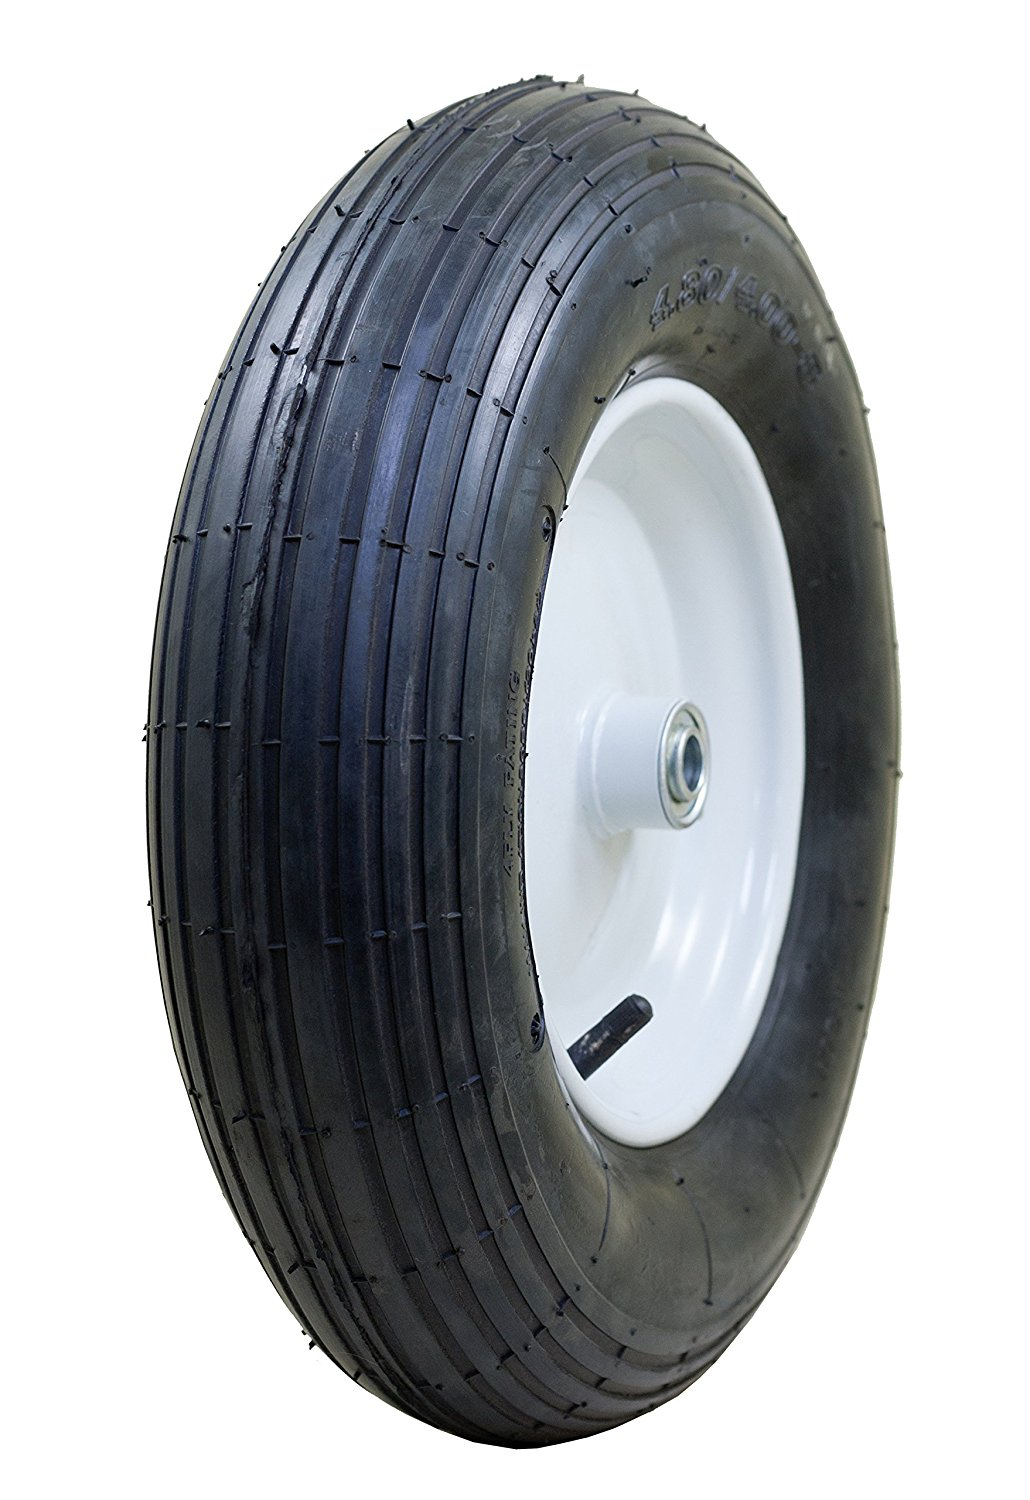 "arathon 4.80/4.00-8"" Pneumatic (Air Filled) Tire on Wheel, 3"" Hub, 3/4 Bearings, Ribbed Tread"